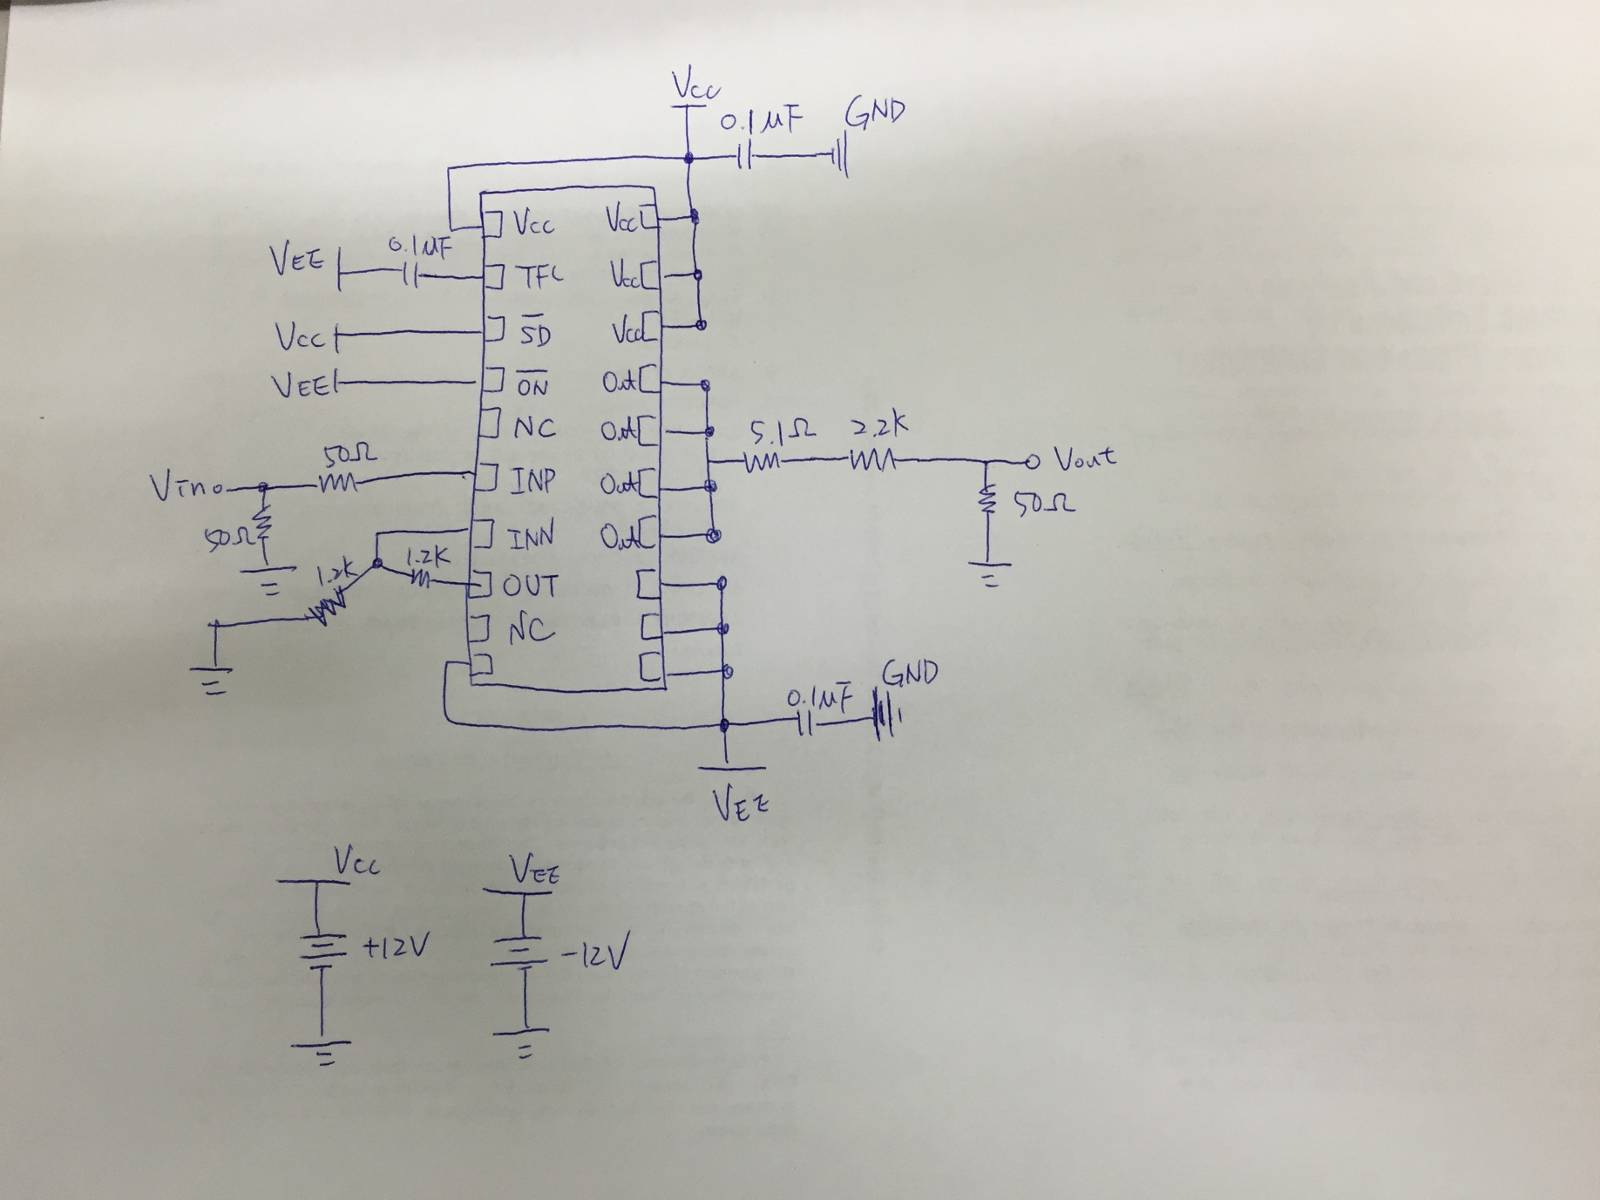 Ada4870 Non Functional Operating Qa Operational Amplifiers Sine Wave Generator Circuit Group Picture Image By Tag The Problem Is That Output Signal Maintained Zero After Switching On Power Supply